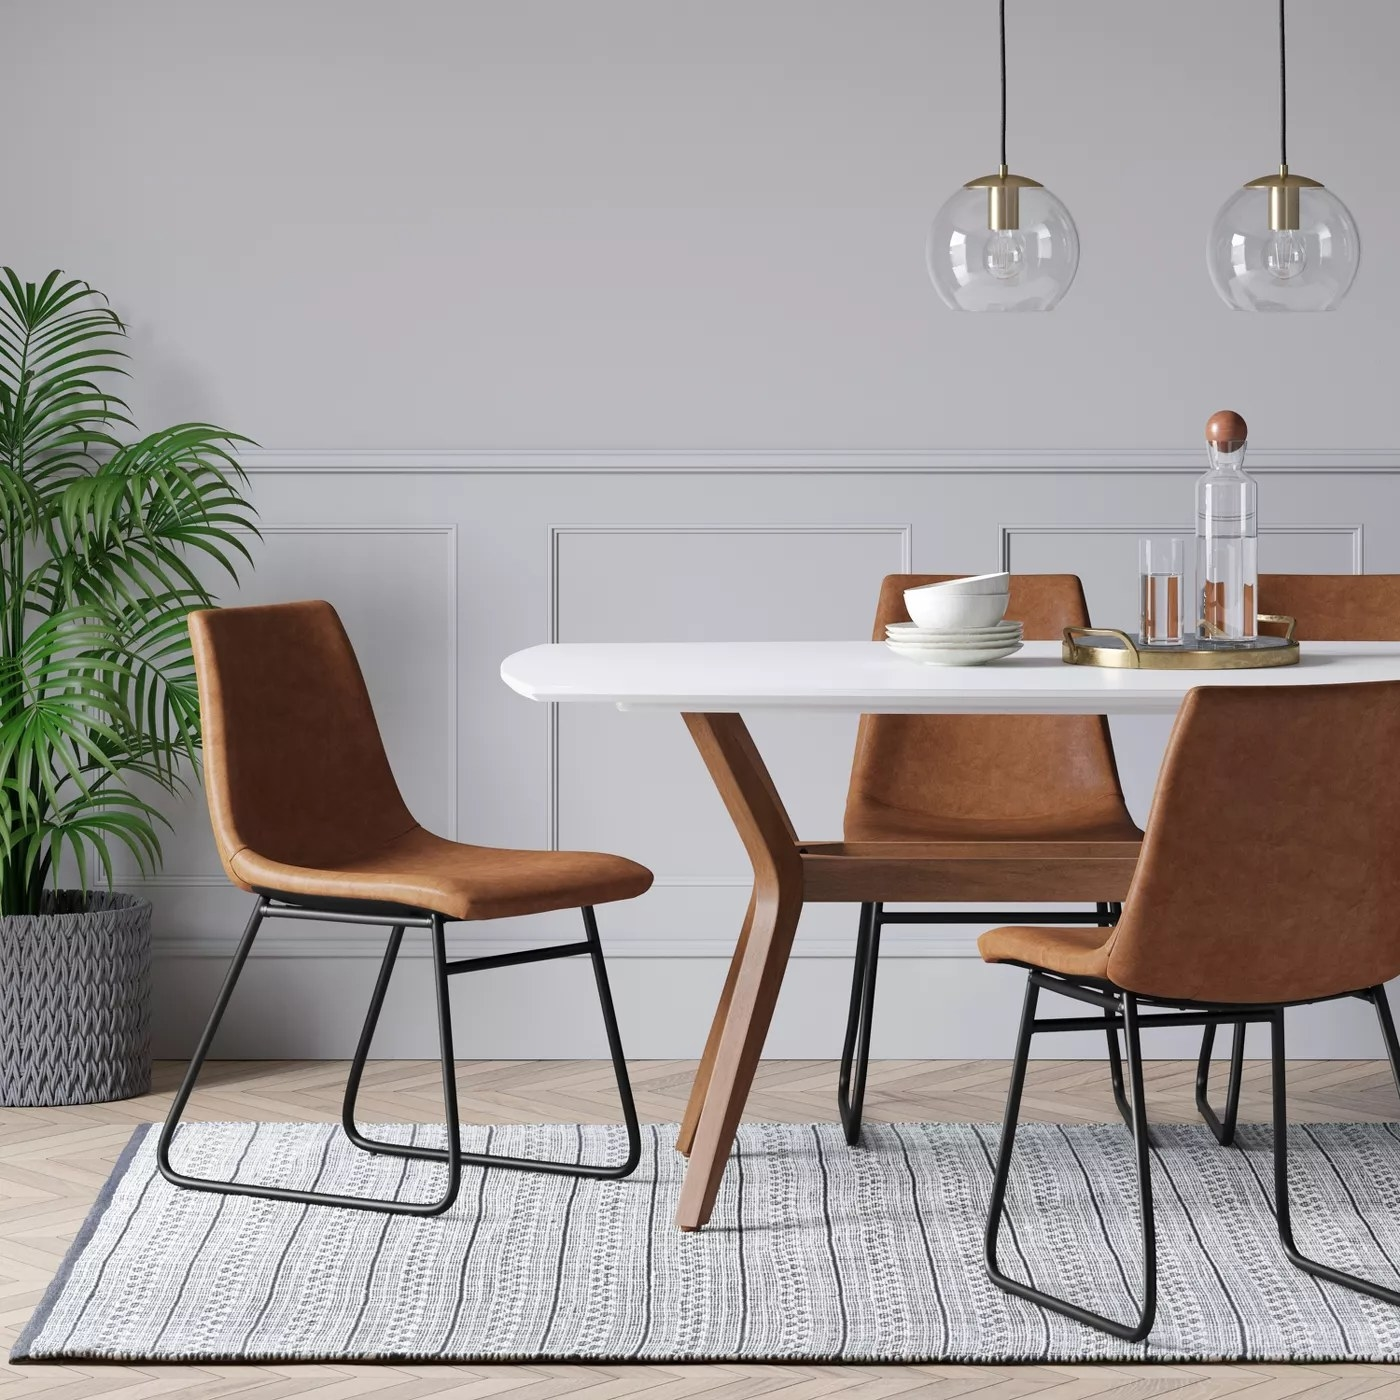 The leather chairs with metal legs in a dining room